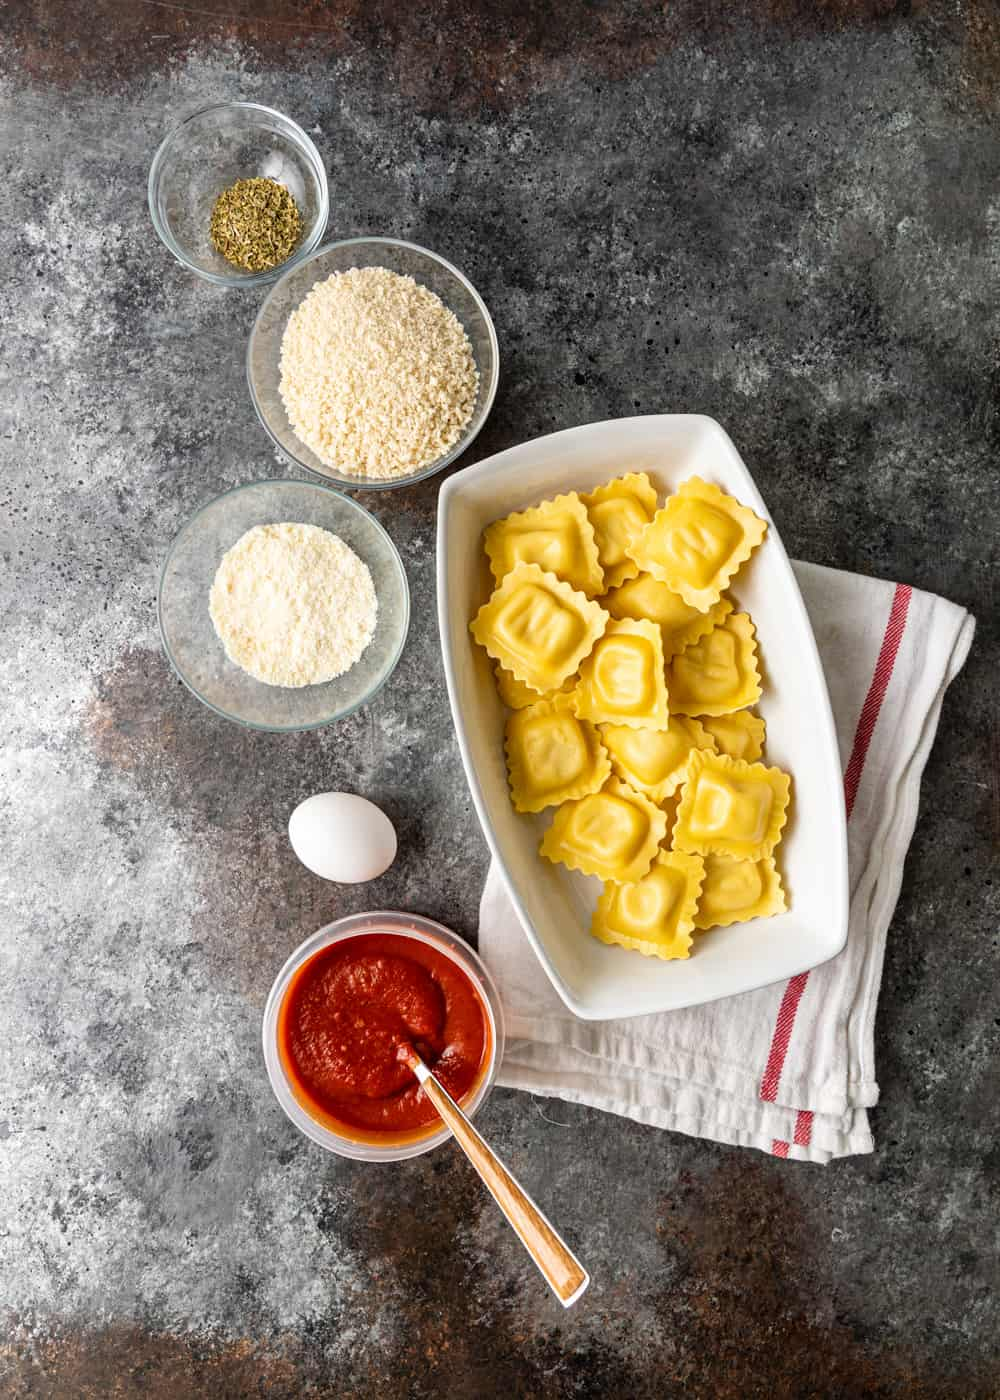 individual bowls with cheese ravioli recipe ingredients on a counter with a dish towel